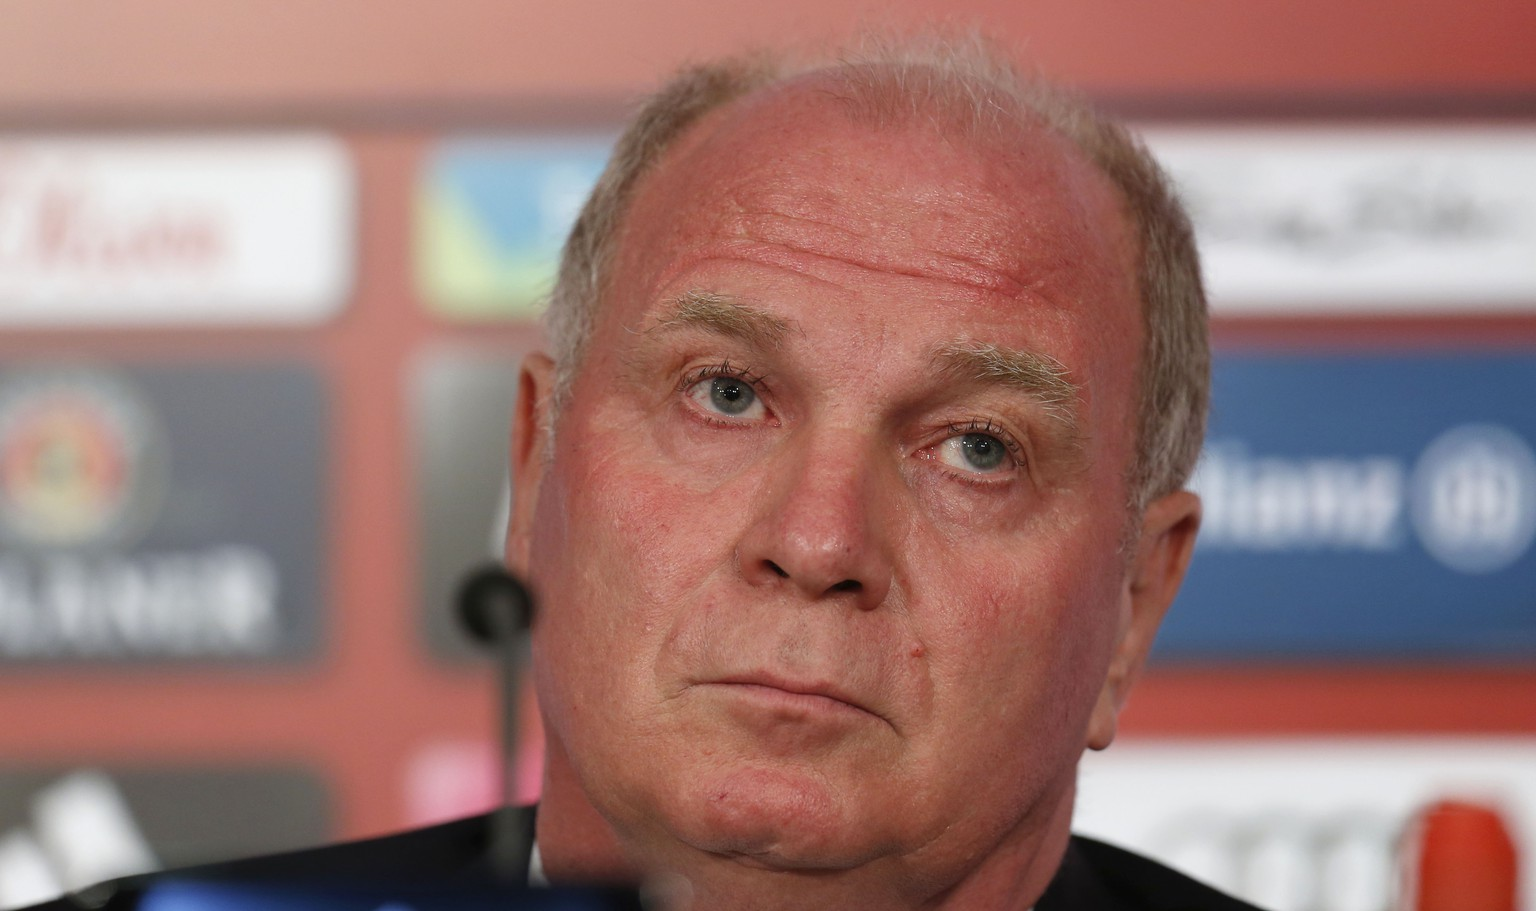 FC Bayern Munich president Uli Hoeness talks to journalists during a news conference in Munich, southern Germany, Monday, June 24, 2013. (AP Photo/Matthias Schrader)